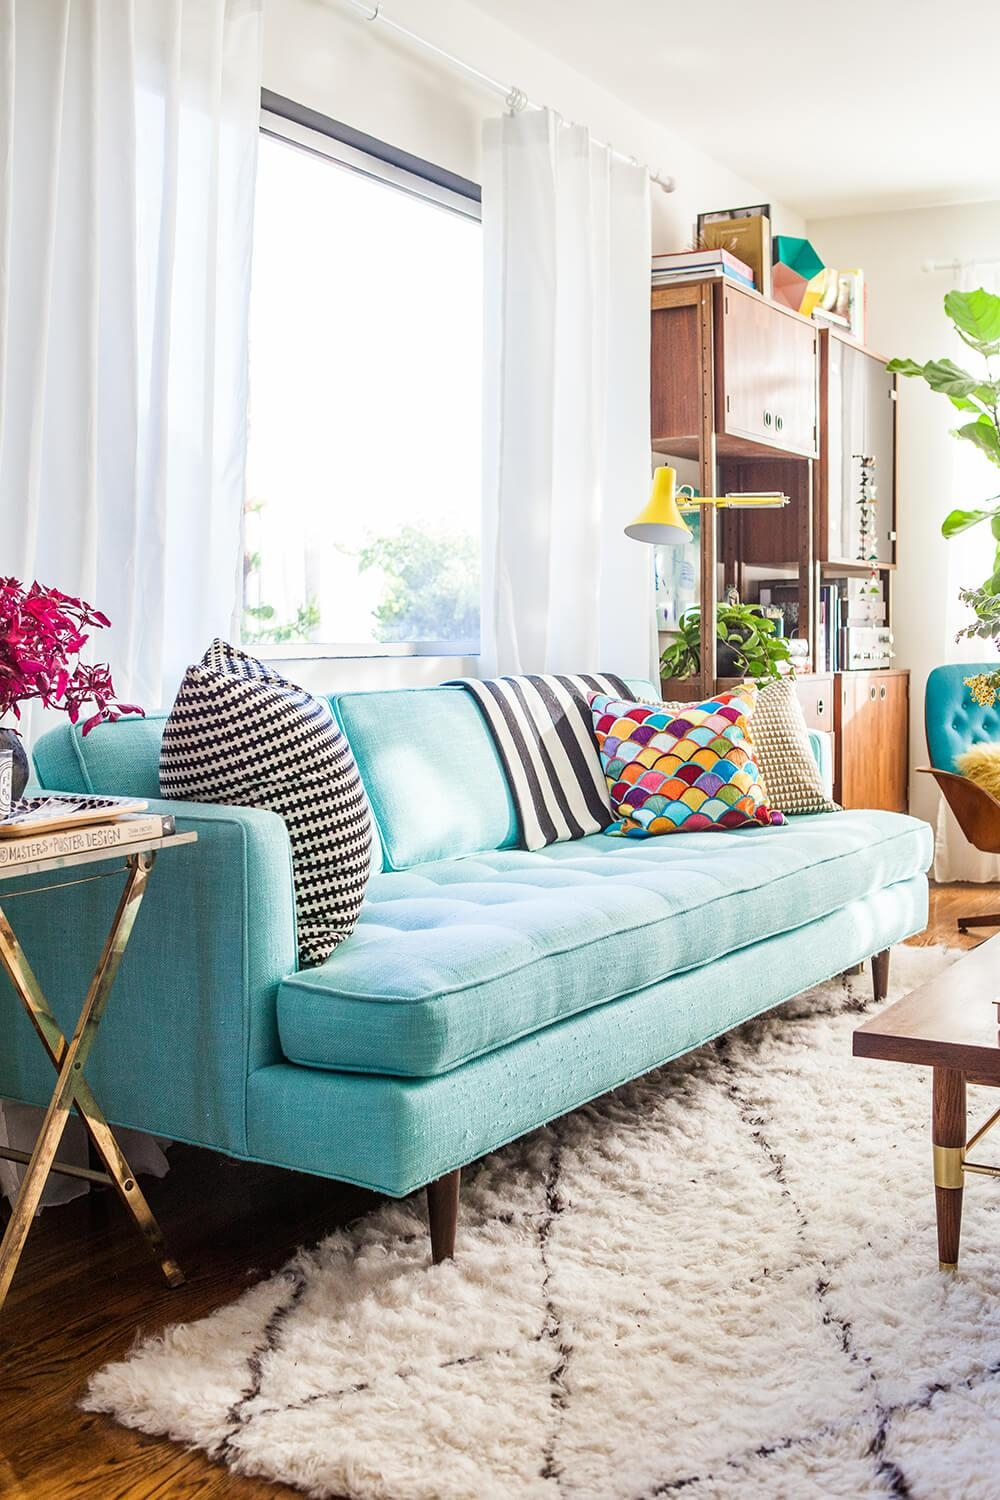 84 Affordable Amazing Sofas Under $1000 – Emily Henderson Throughout Affordable Tufted Sofas (Image 3 of 20)